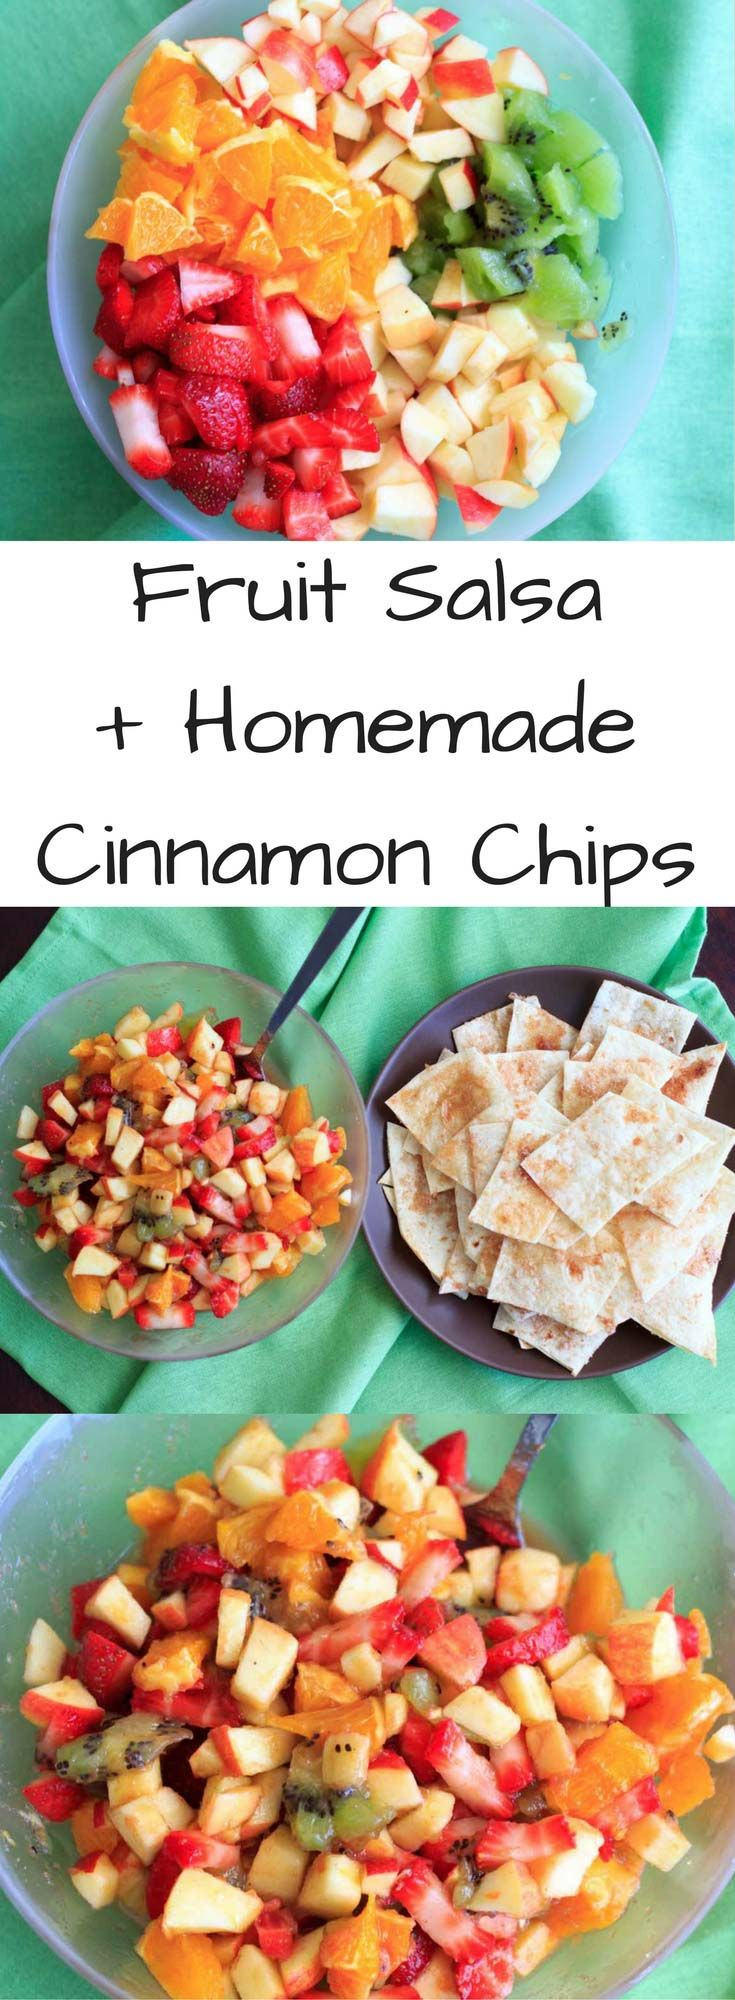 Fruit salsa made from apples, oranges, kiwis and strawberries and tortilla chips baked with cinnamon sugar. Quick to throw together for a colorful party appetizer or healthy dessert! Vegan.